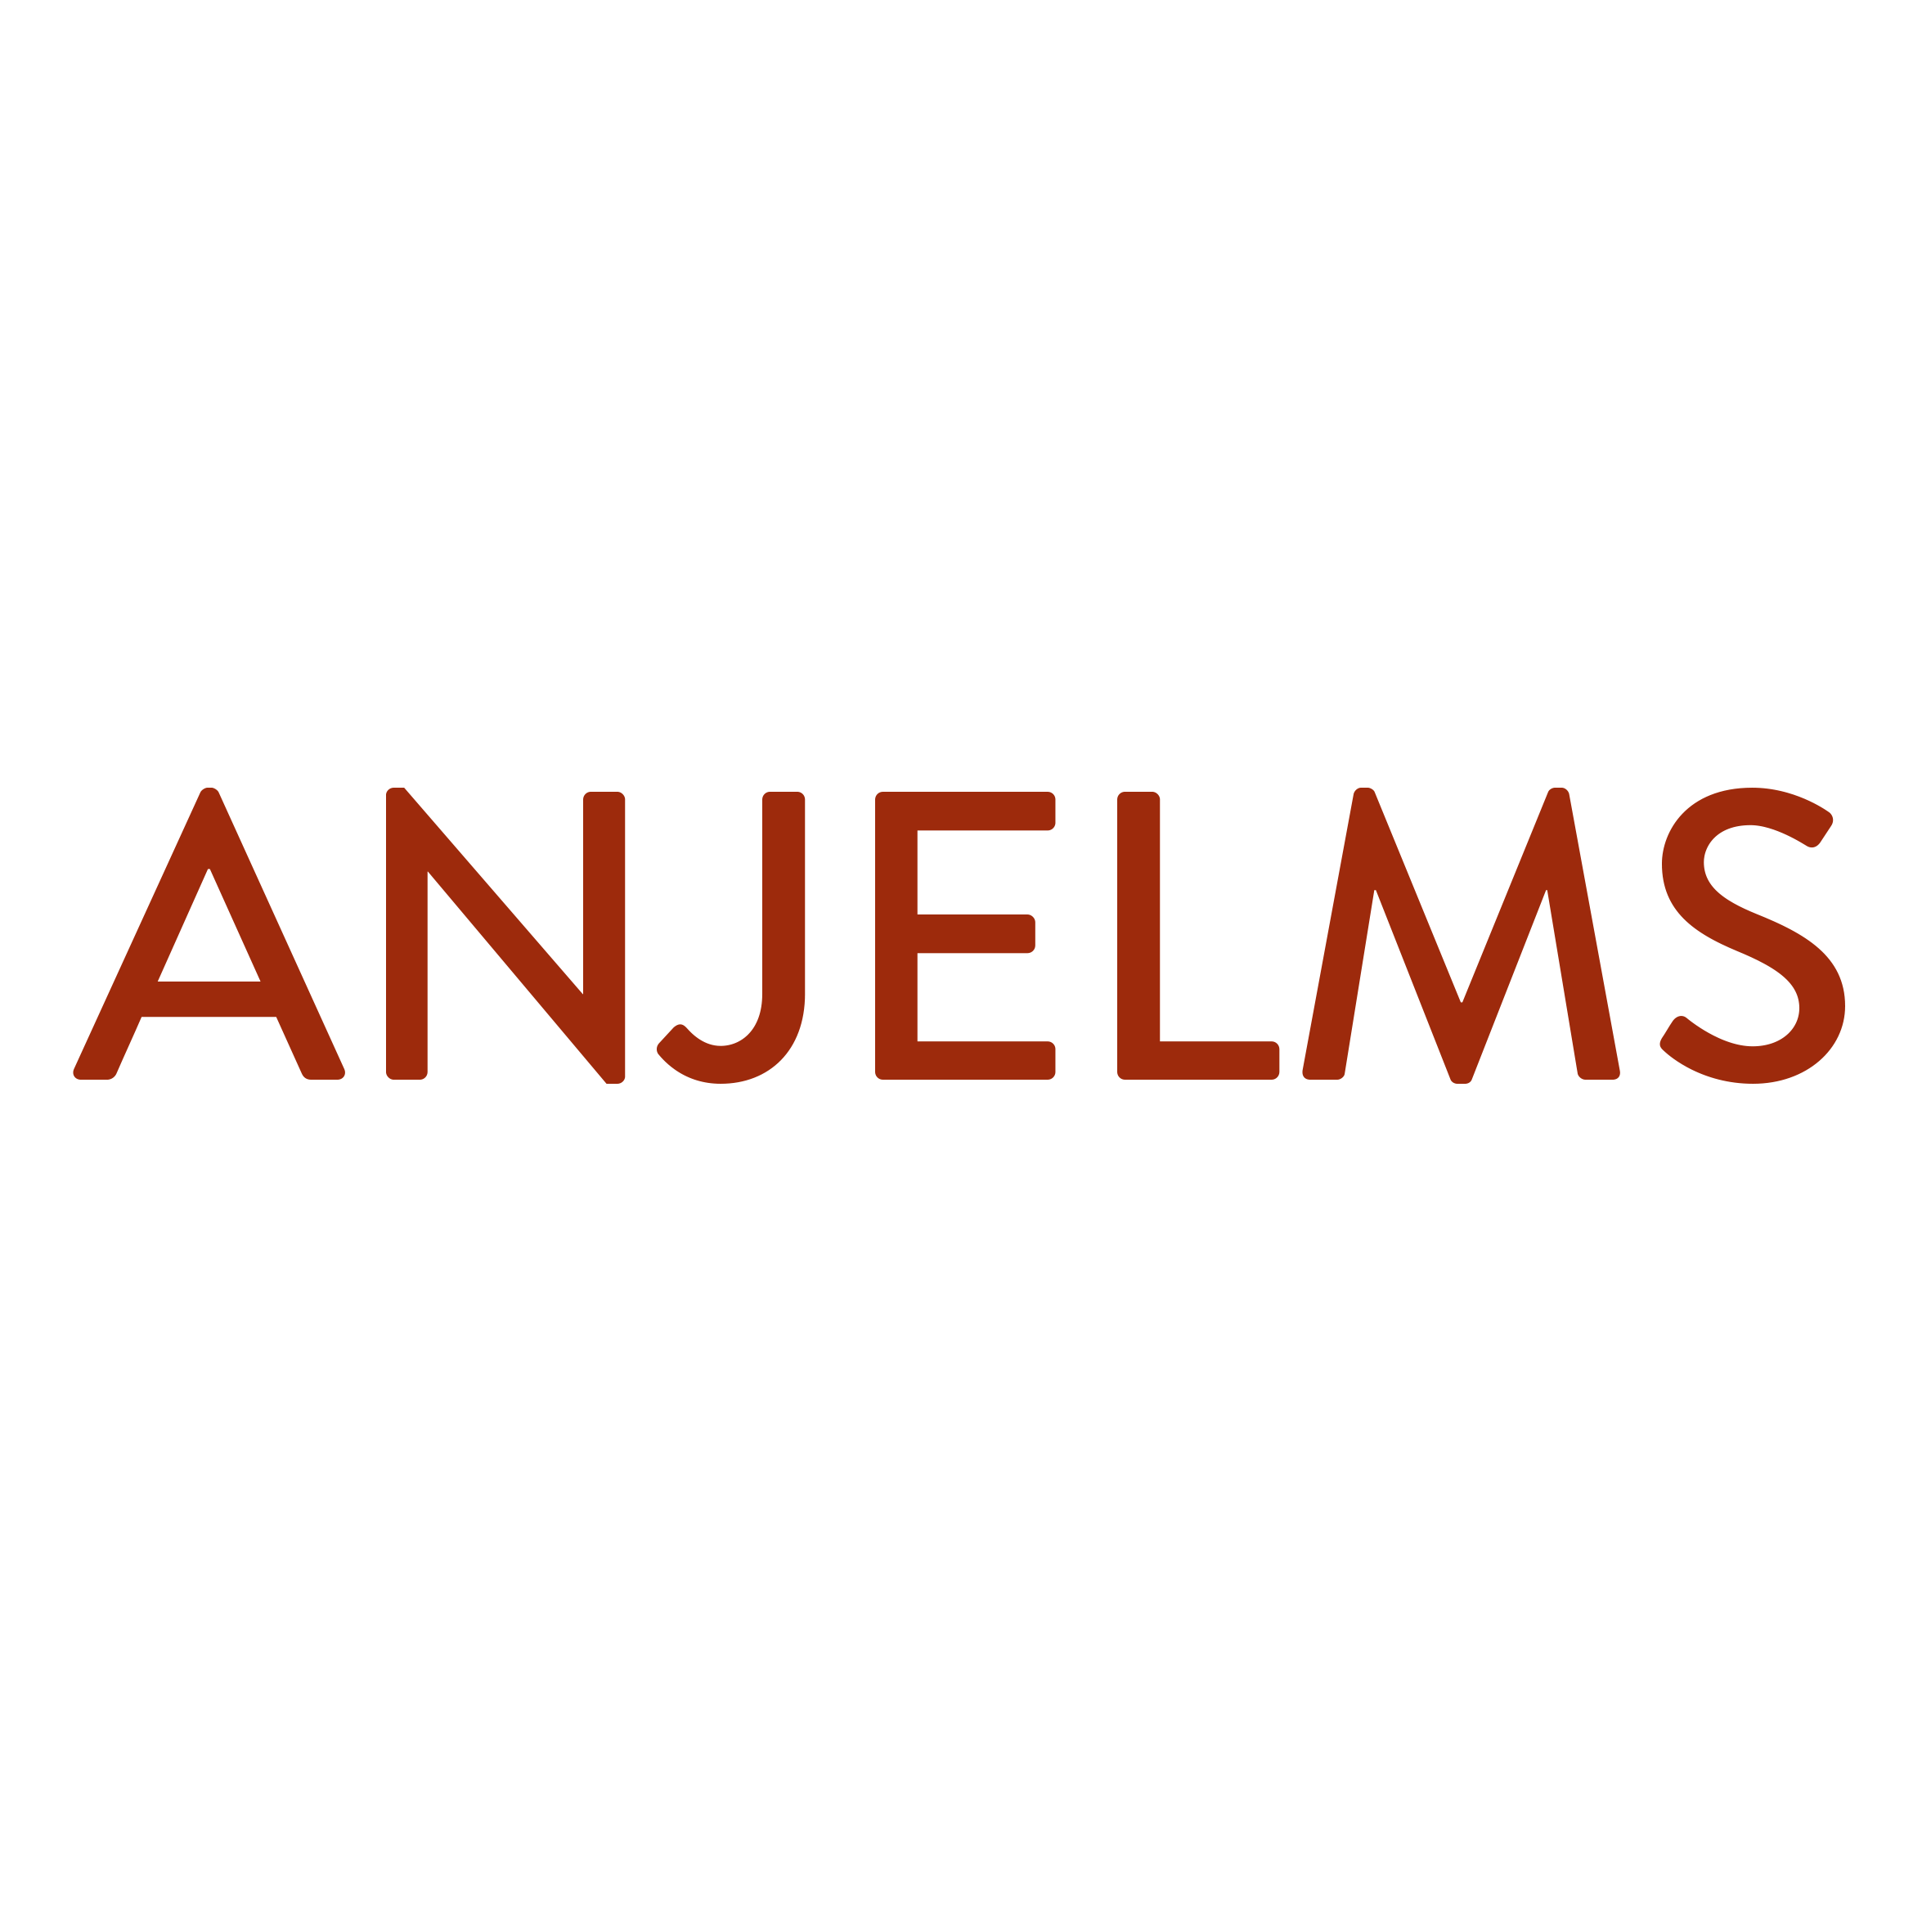 The ANJELMS Project